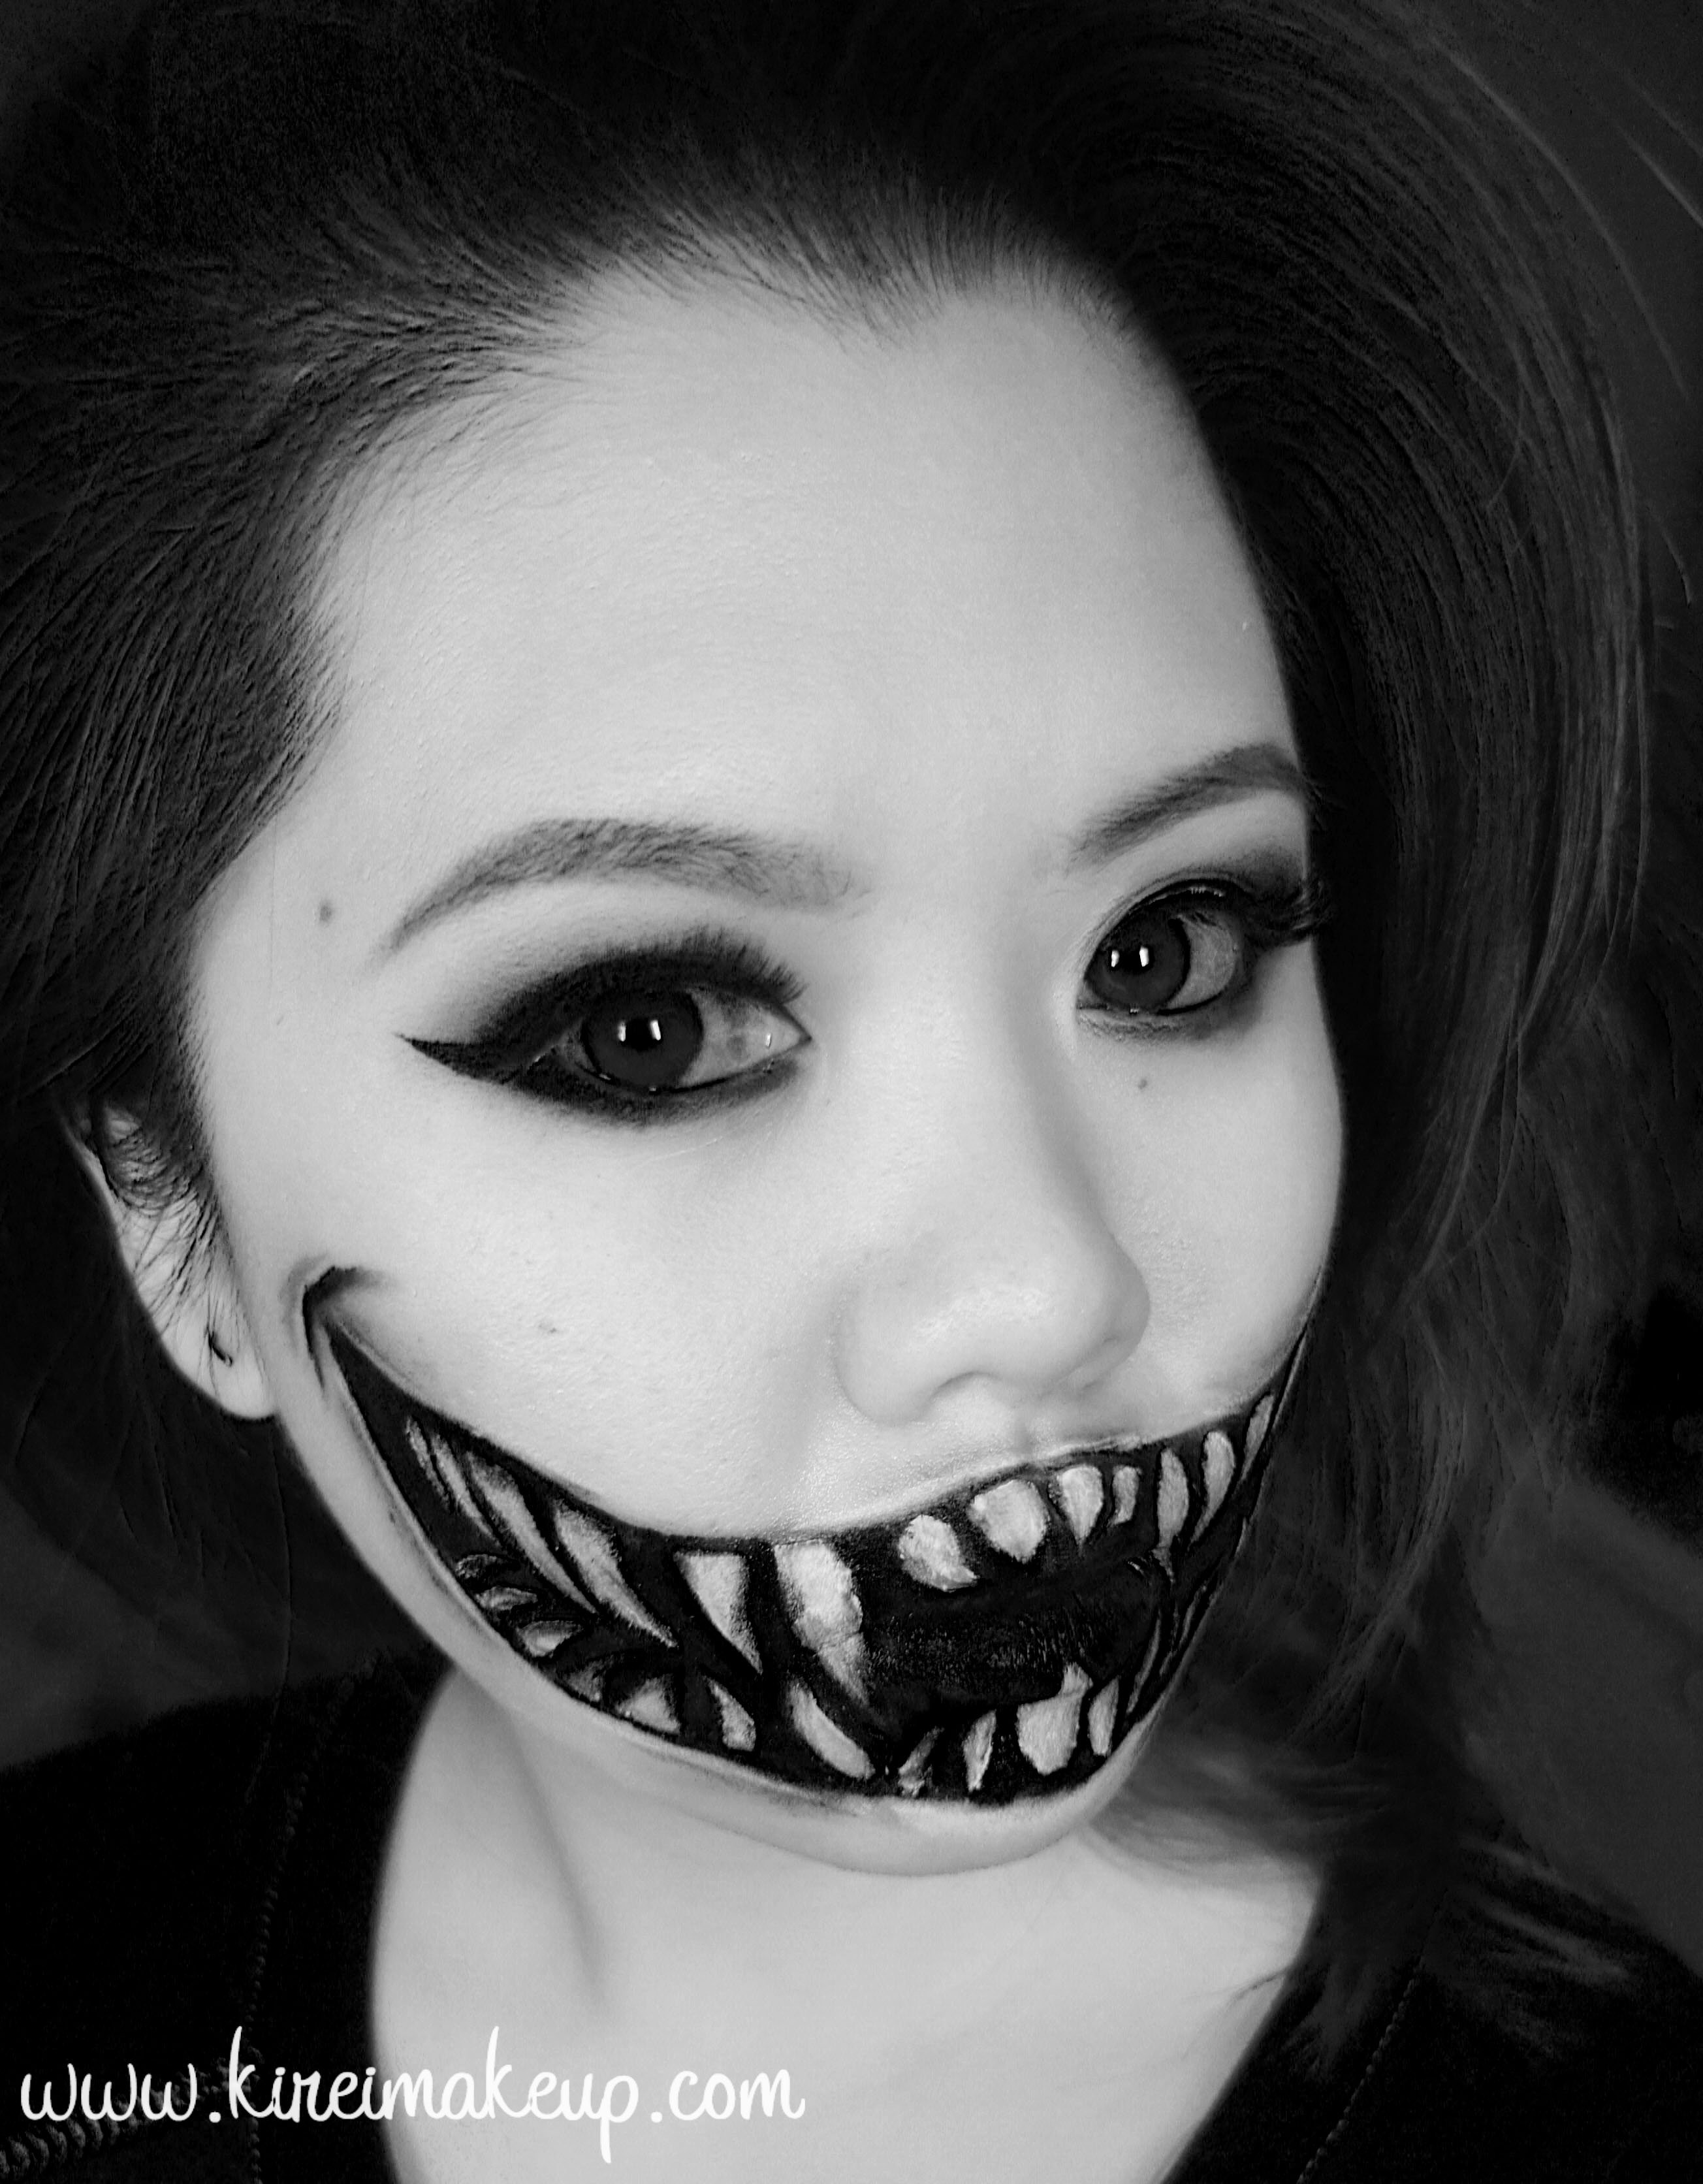 10 Wonderful Black And White Face Paint Ideas For Halloween lovely face paint black face paint gel liner purple liner face paint 2020